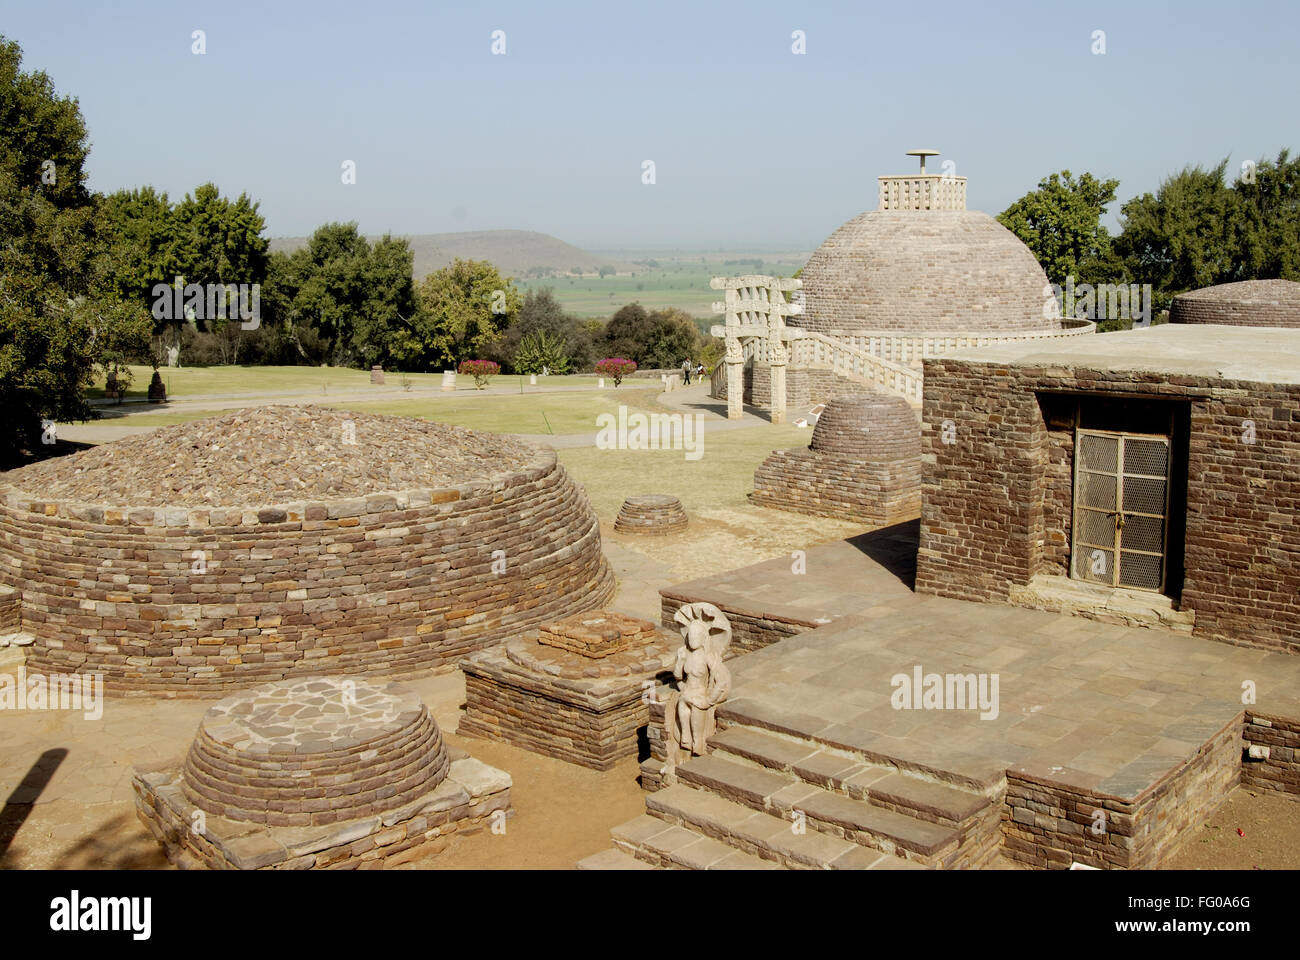 Great maha stupa no 3 specimens of Buddhist architectural forms chaityas monasteries at Sanchi , Bhopal , Madhya - Stock Image